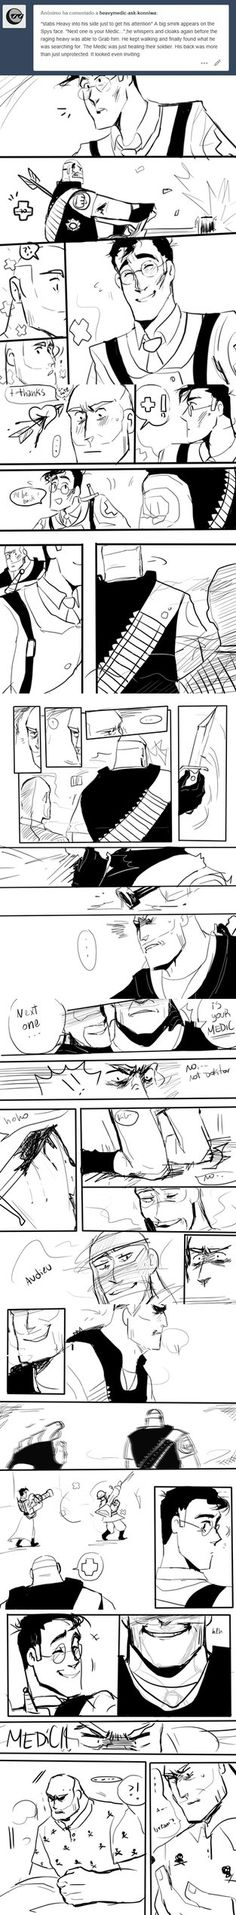 xD a late reply of my blog x'd large post